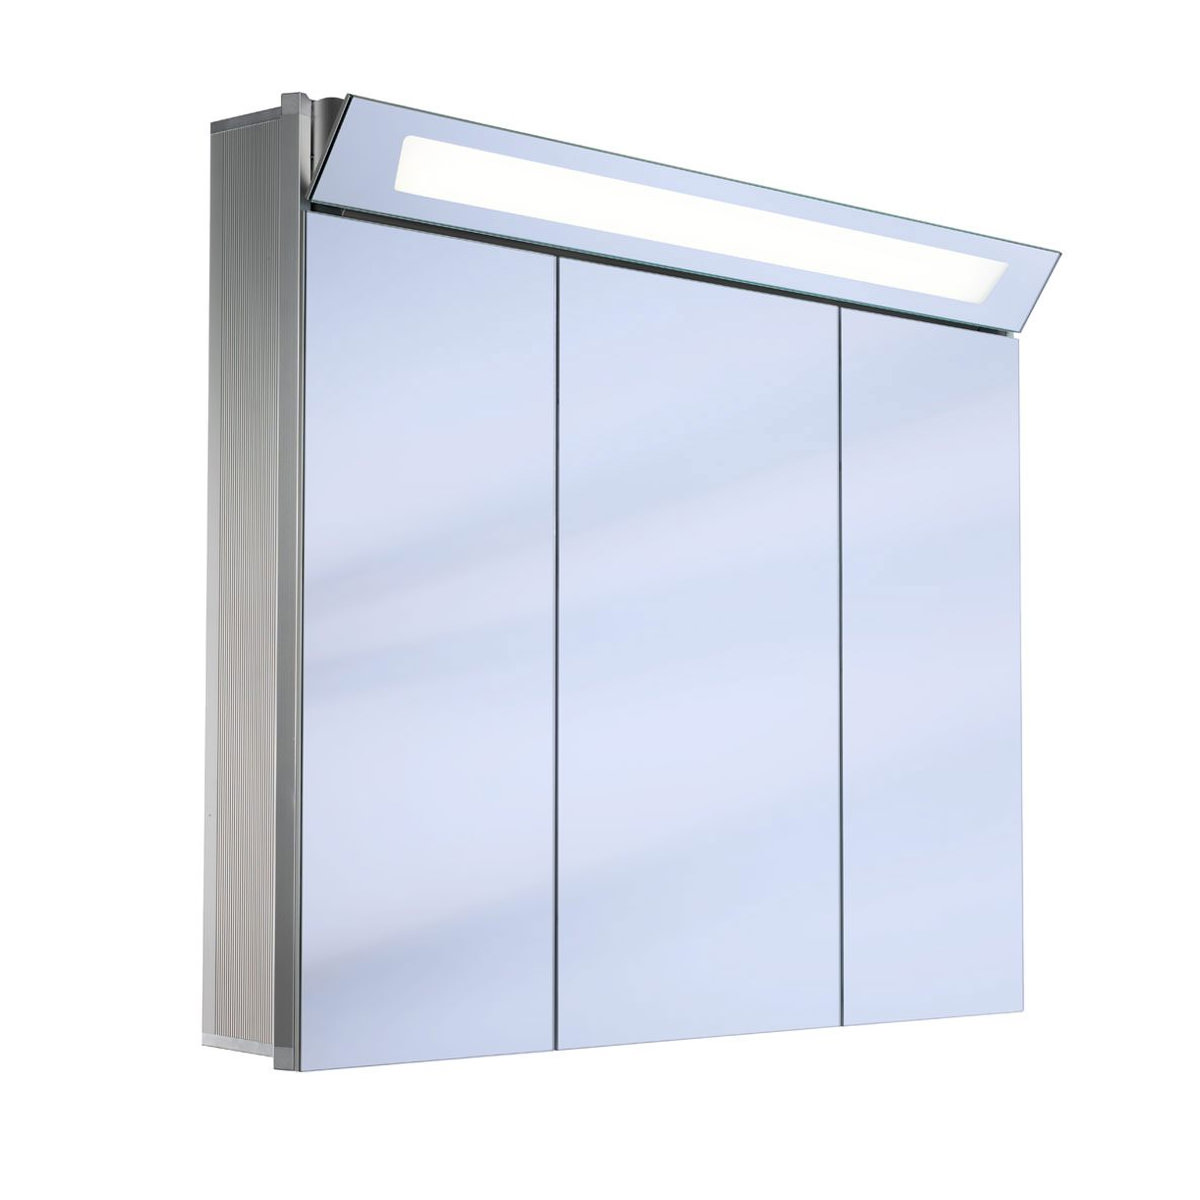 3 Door Mirrored Bathroom Cabinet Schneider Capeline 3 Door Illuminated Mirror Cabinet 1000mm